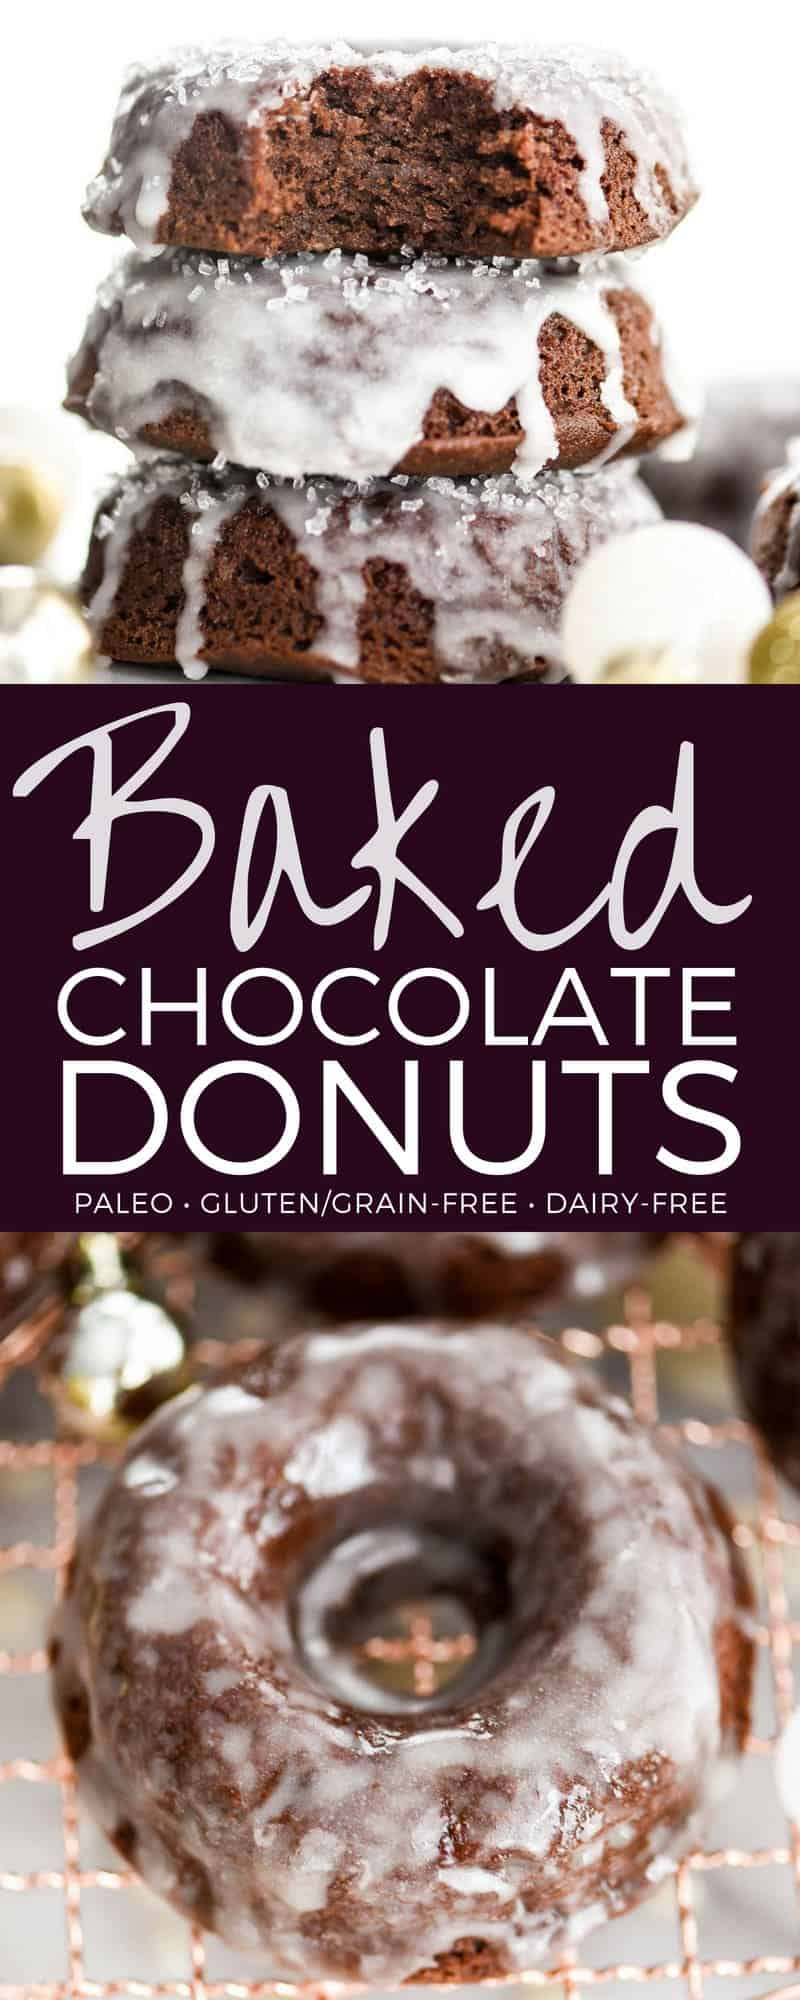 Paleo Baked Chocolate Donuts White Chocolate Glaze are a healthy yet indulgent breakfast recipe! They have the perfect texture and a rich chocolate flavor! Gluten-free, grain-free, & no refined sugar! #baked #donuts #chocolate #paleo #glutenfree #grainfree #chocolatedonuts #bakeddonuts #healthybreakfast #dairyfree